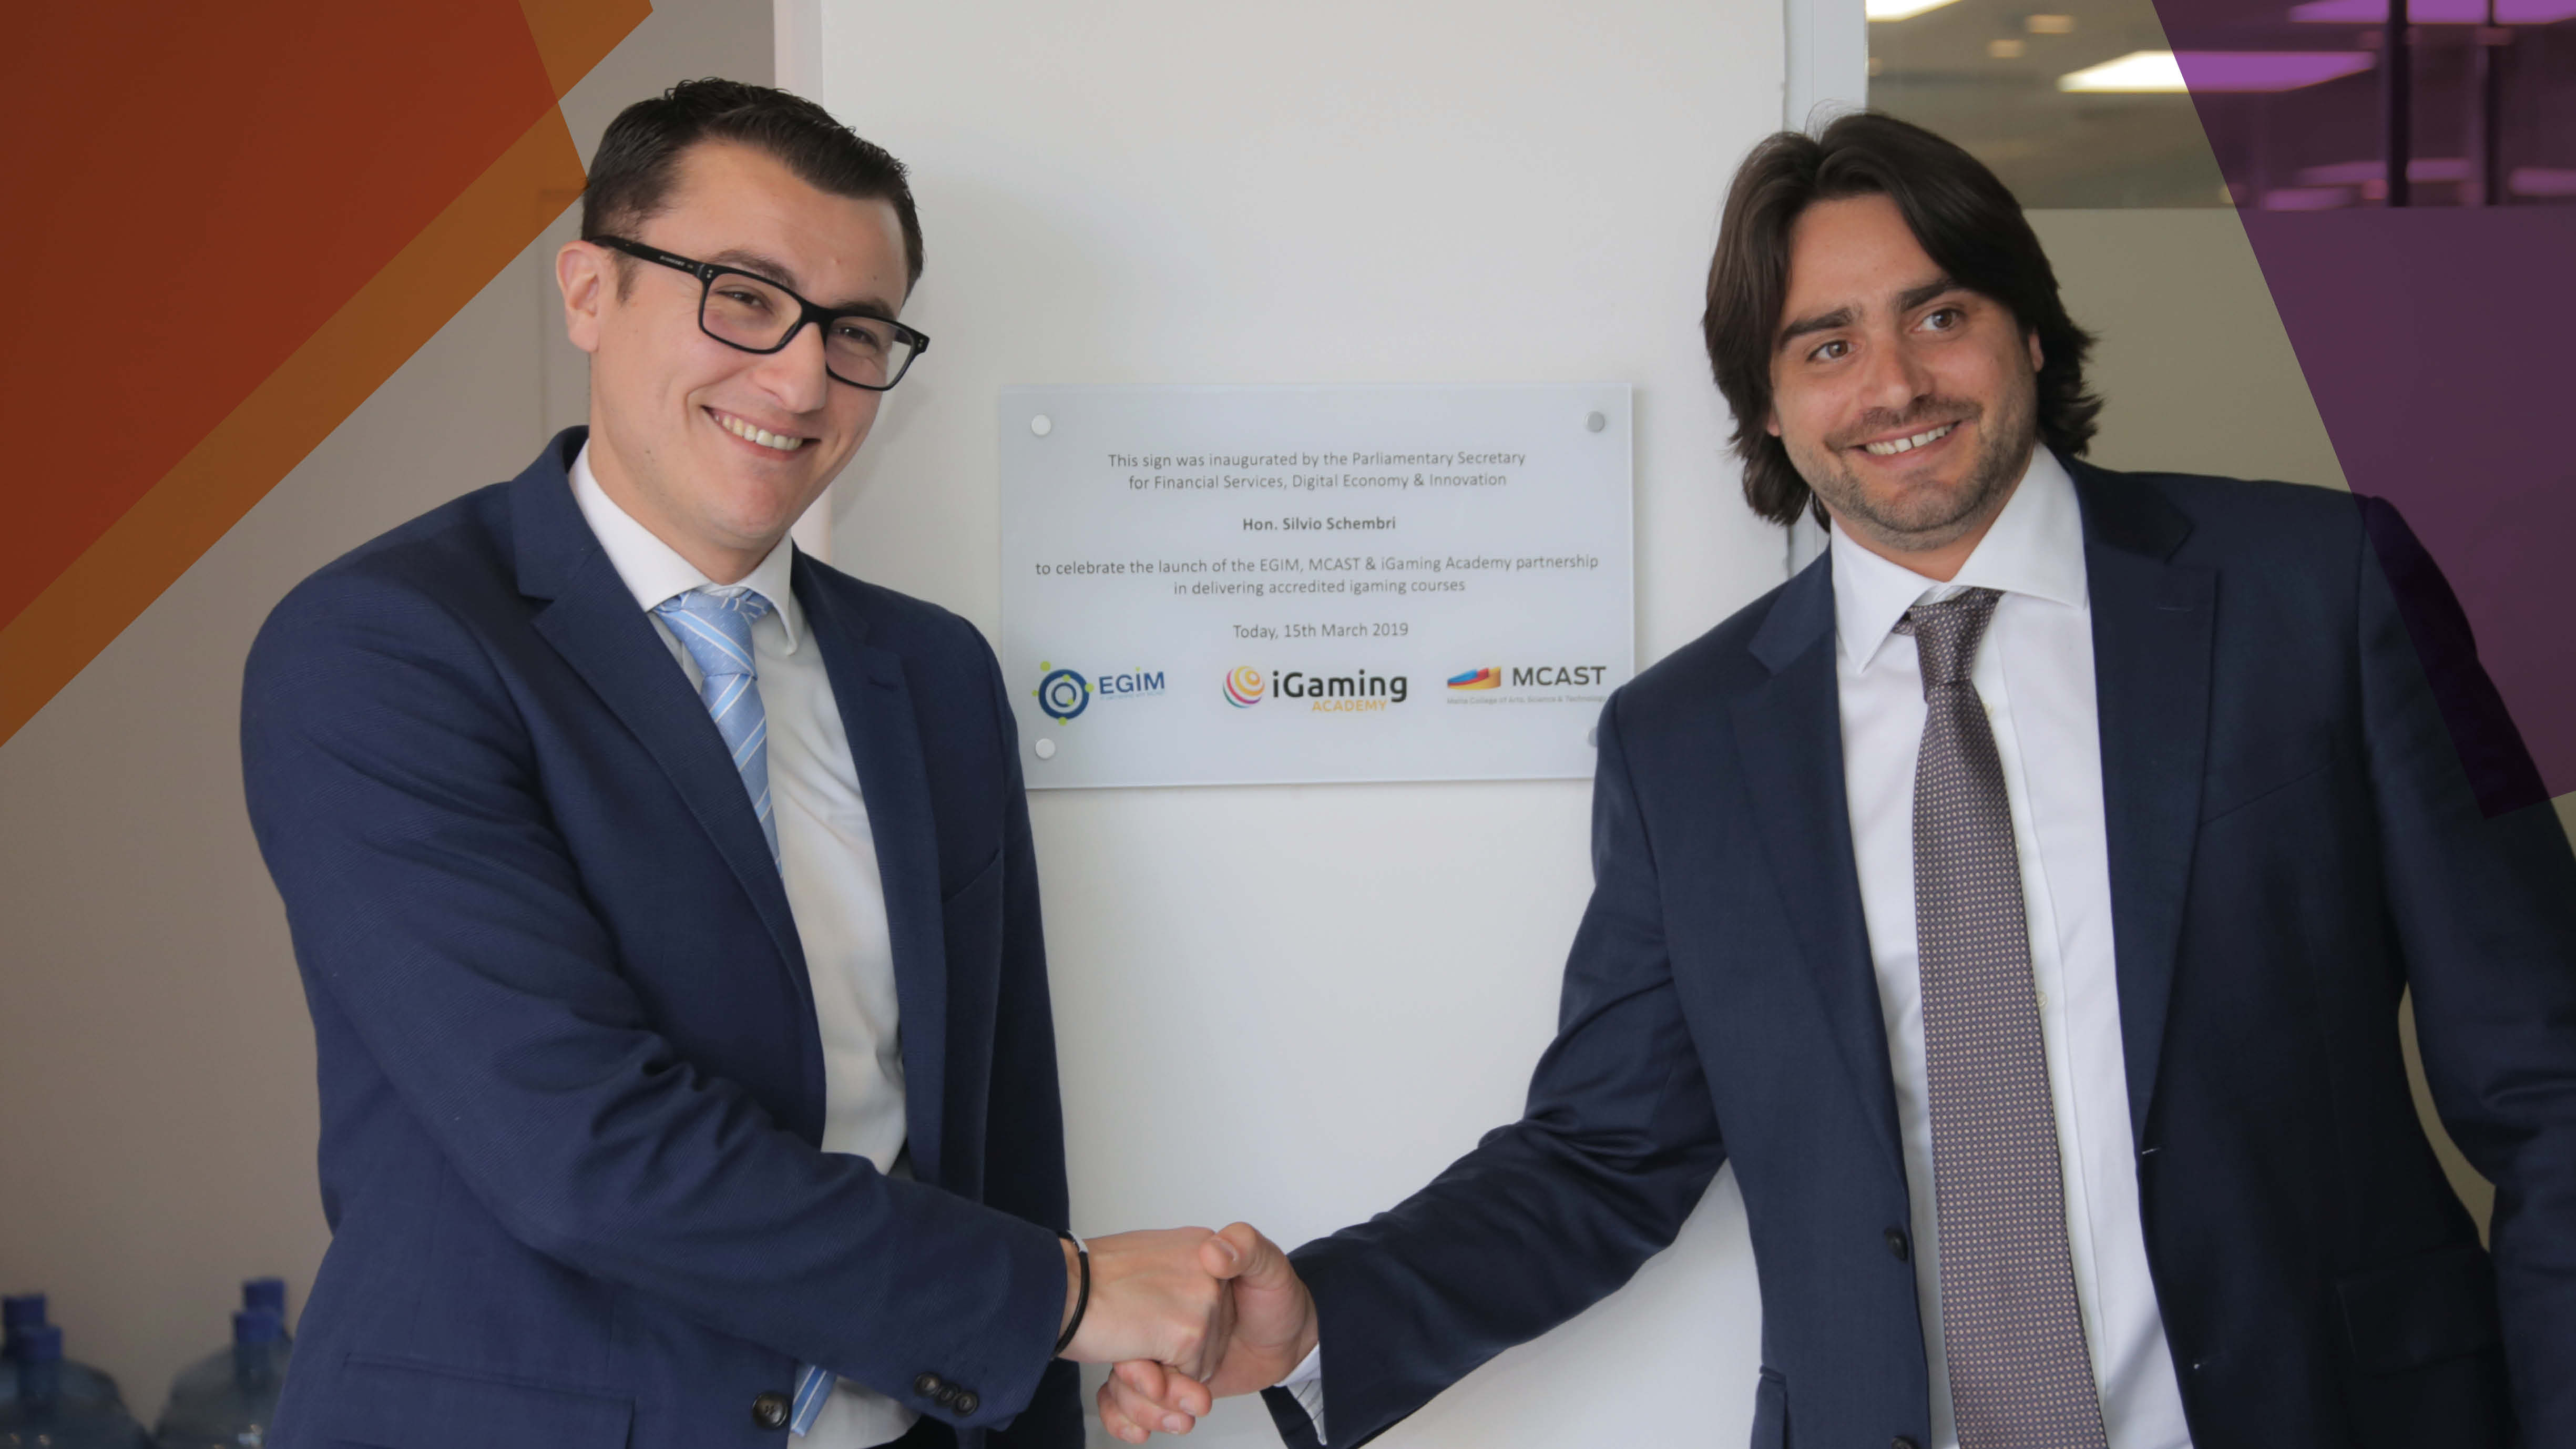 EGIM, MCAST & iGaming Academy Inauguration – Increase in Demand for Award in iGaming Accreditation